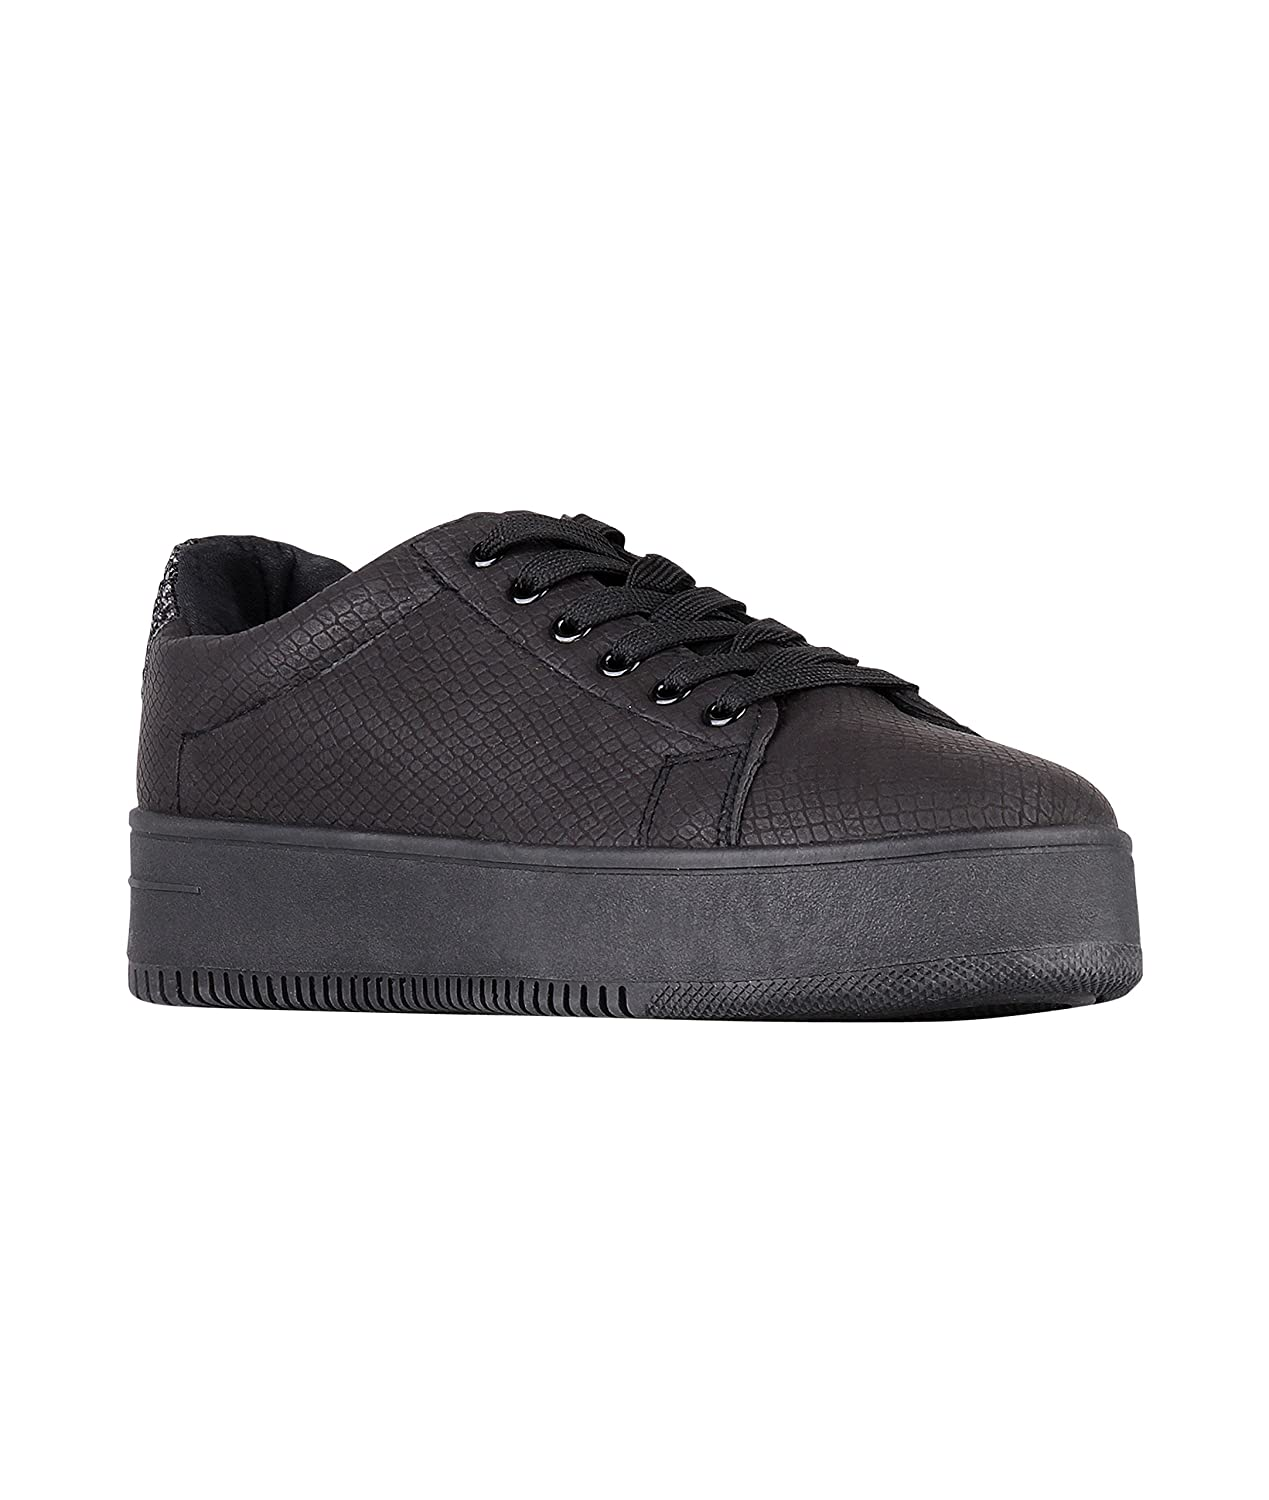 Plimsolls Creepers Trainers Sport Shoes